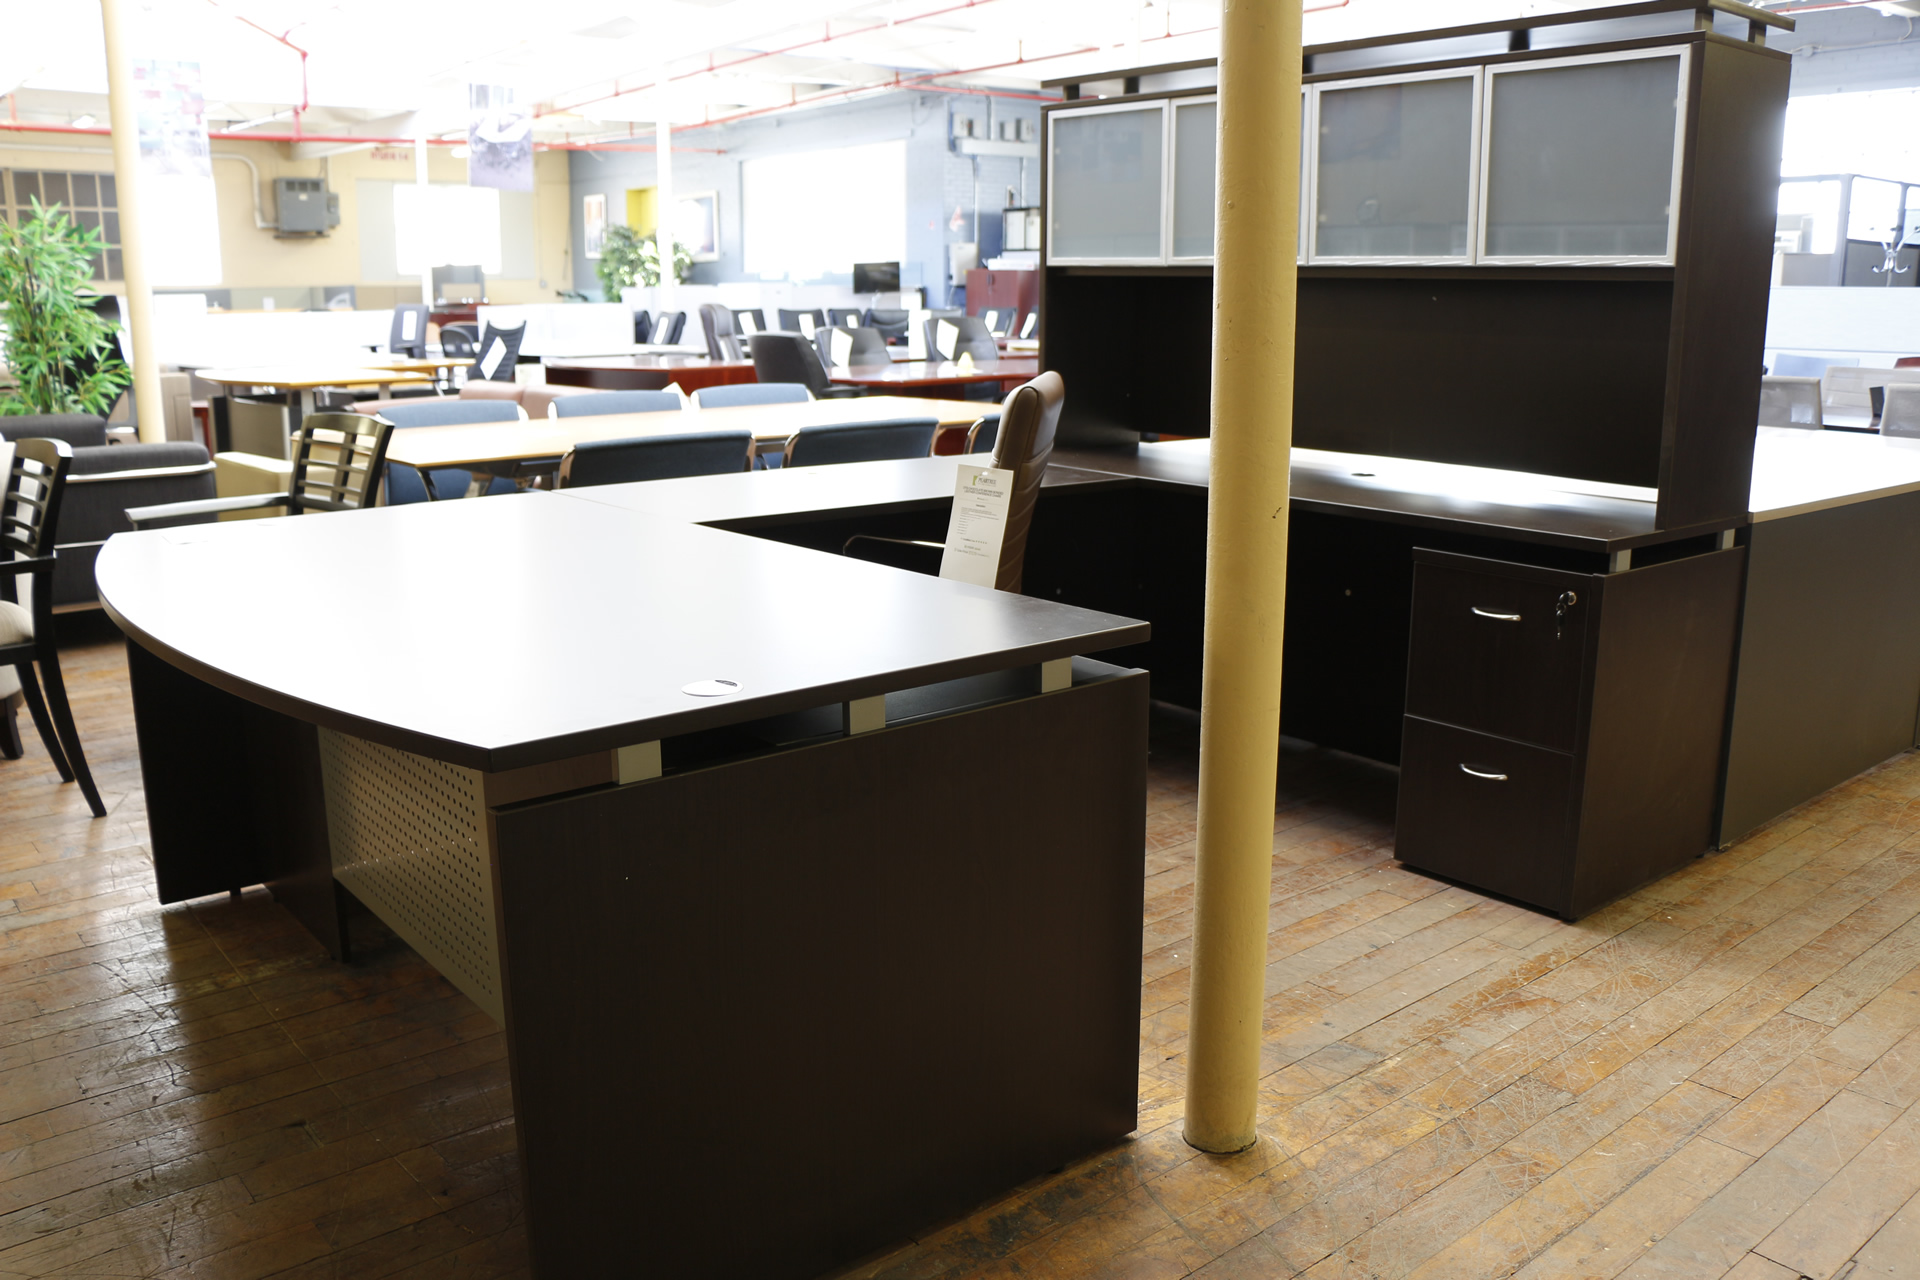 peartreeofficefurniture_peartreeofficefurniture_mg_5058.jpg